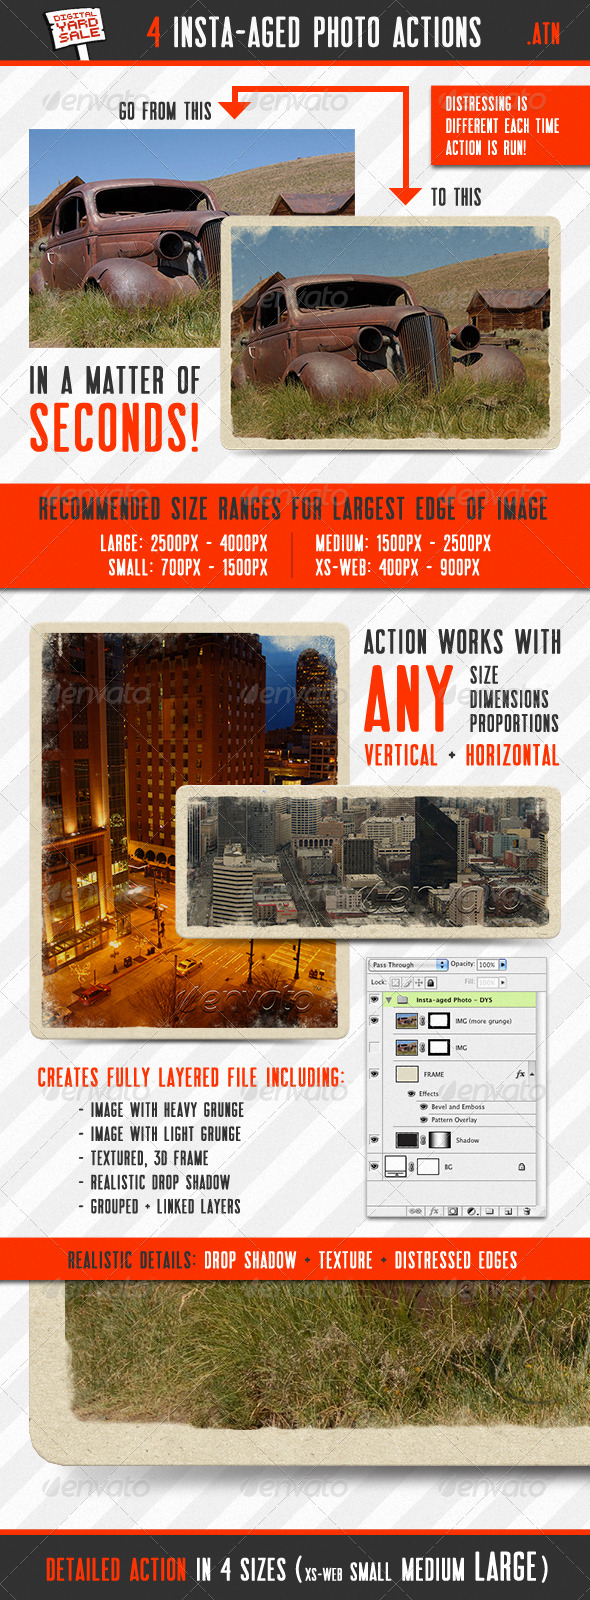 GraphicRiver 4 Insta-aged Photo Actions 149423